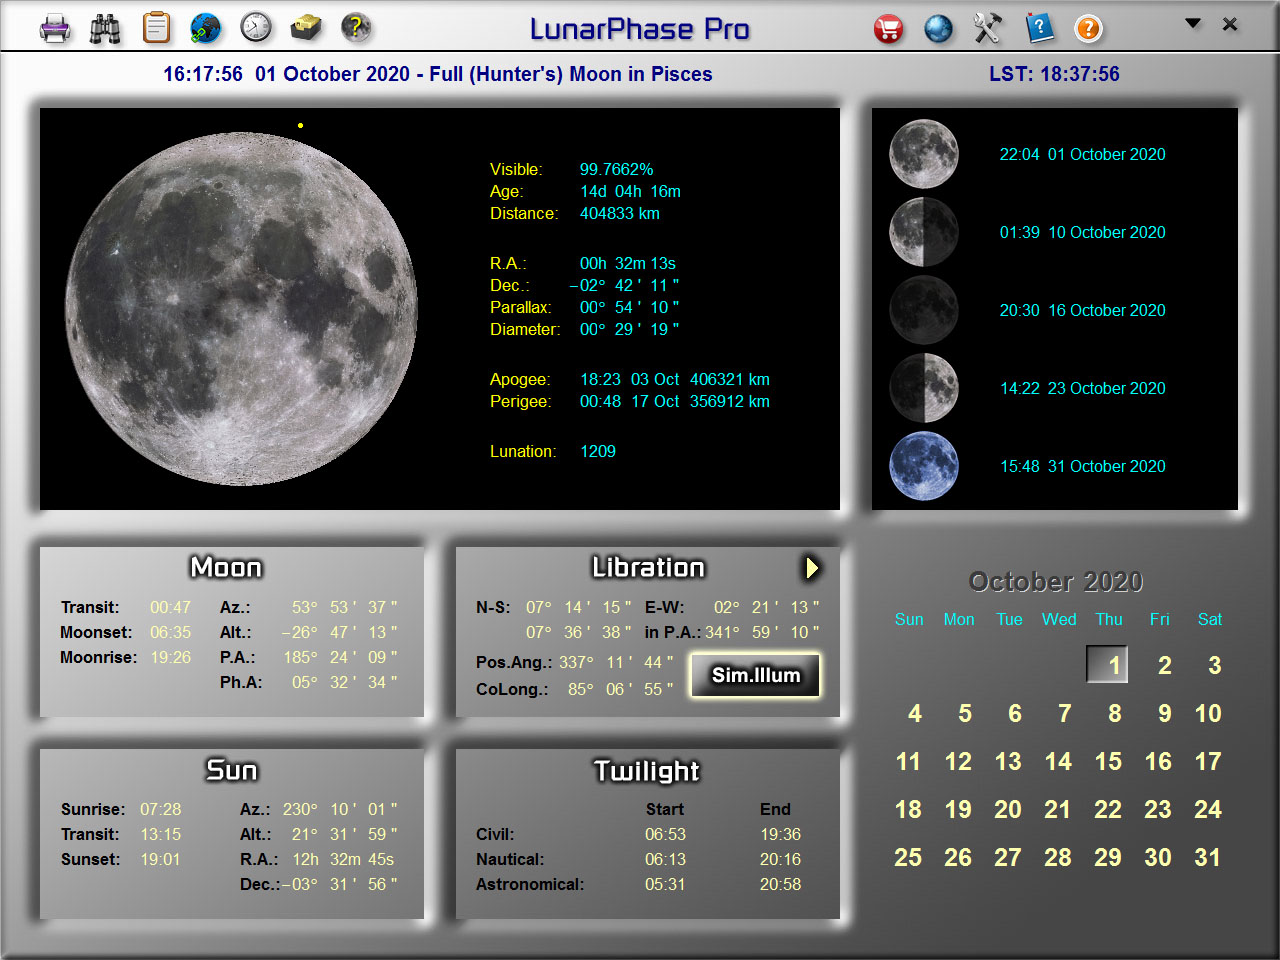 LunarPhase Pro's Main Screen